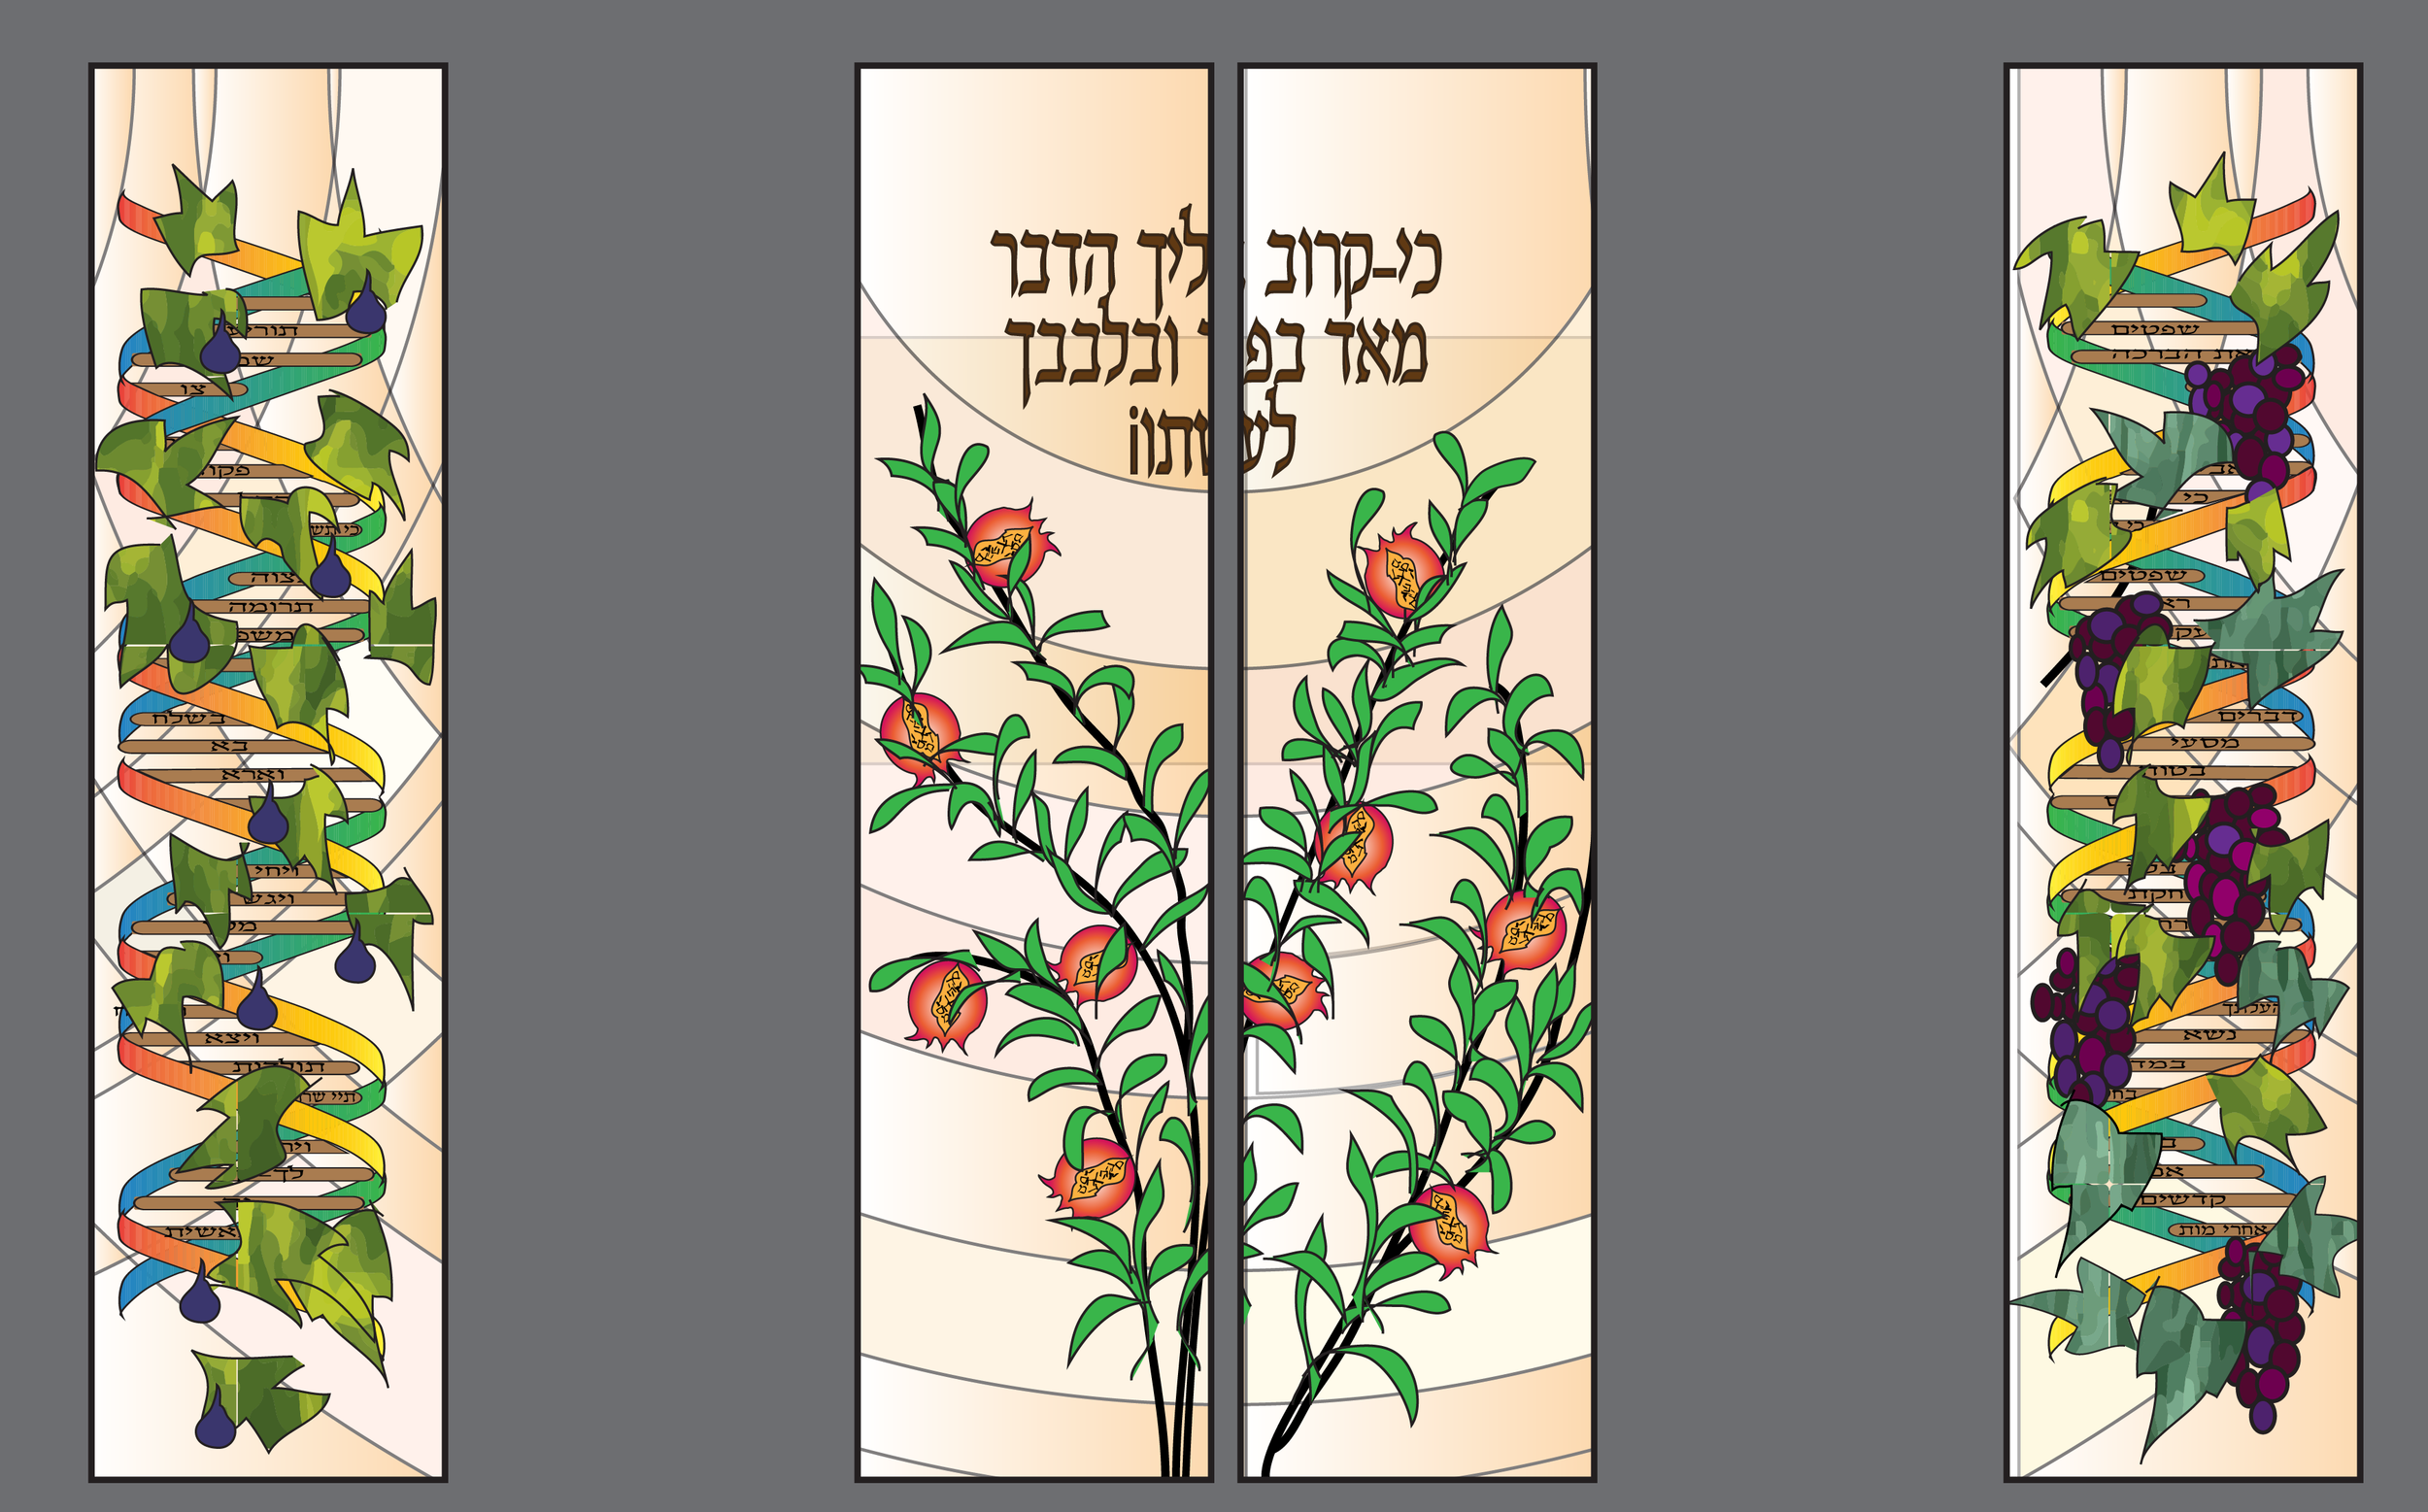 Above, the design reflects the suggested changes in the sidelight, including the DNA double helix with names of Torah portions, removing tohu v'vohu lettering and reducing the number of leaves to eighteen in each sidelight.